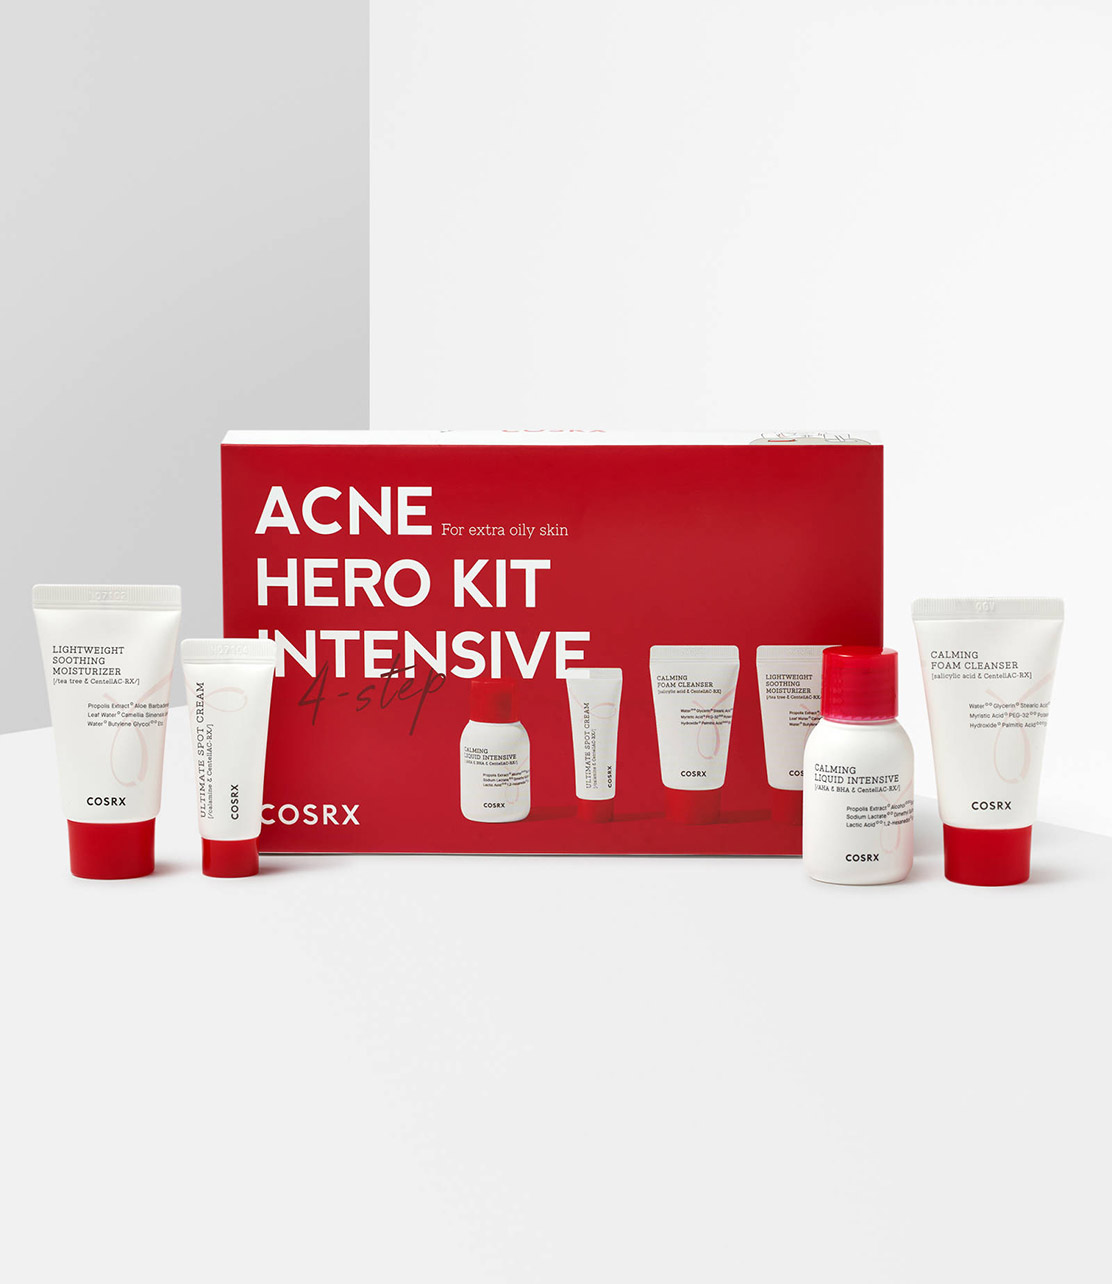 cosrx acne hero kit products